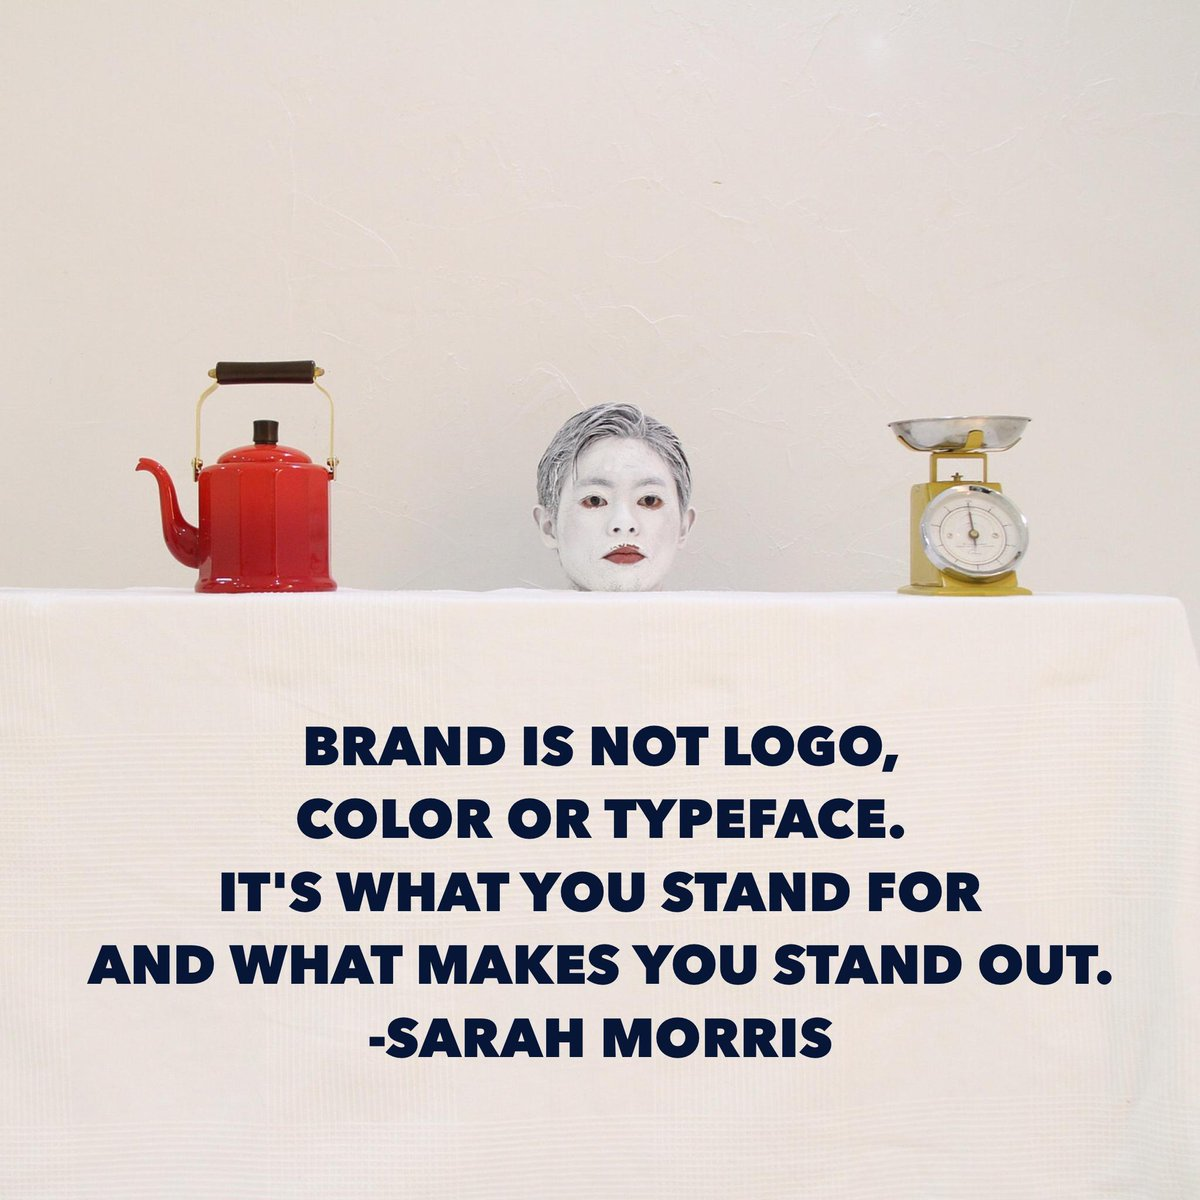 Brand is not logo, color or typeface. It's what you stand for and what makes you… — @sarahbear28 #interactLDN https://t.co/luP4jVJq7e